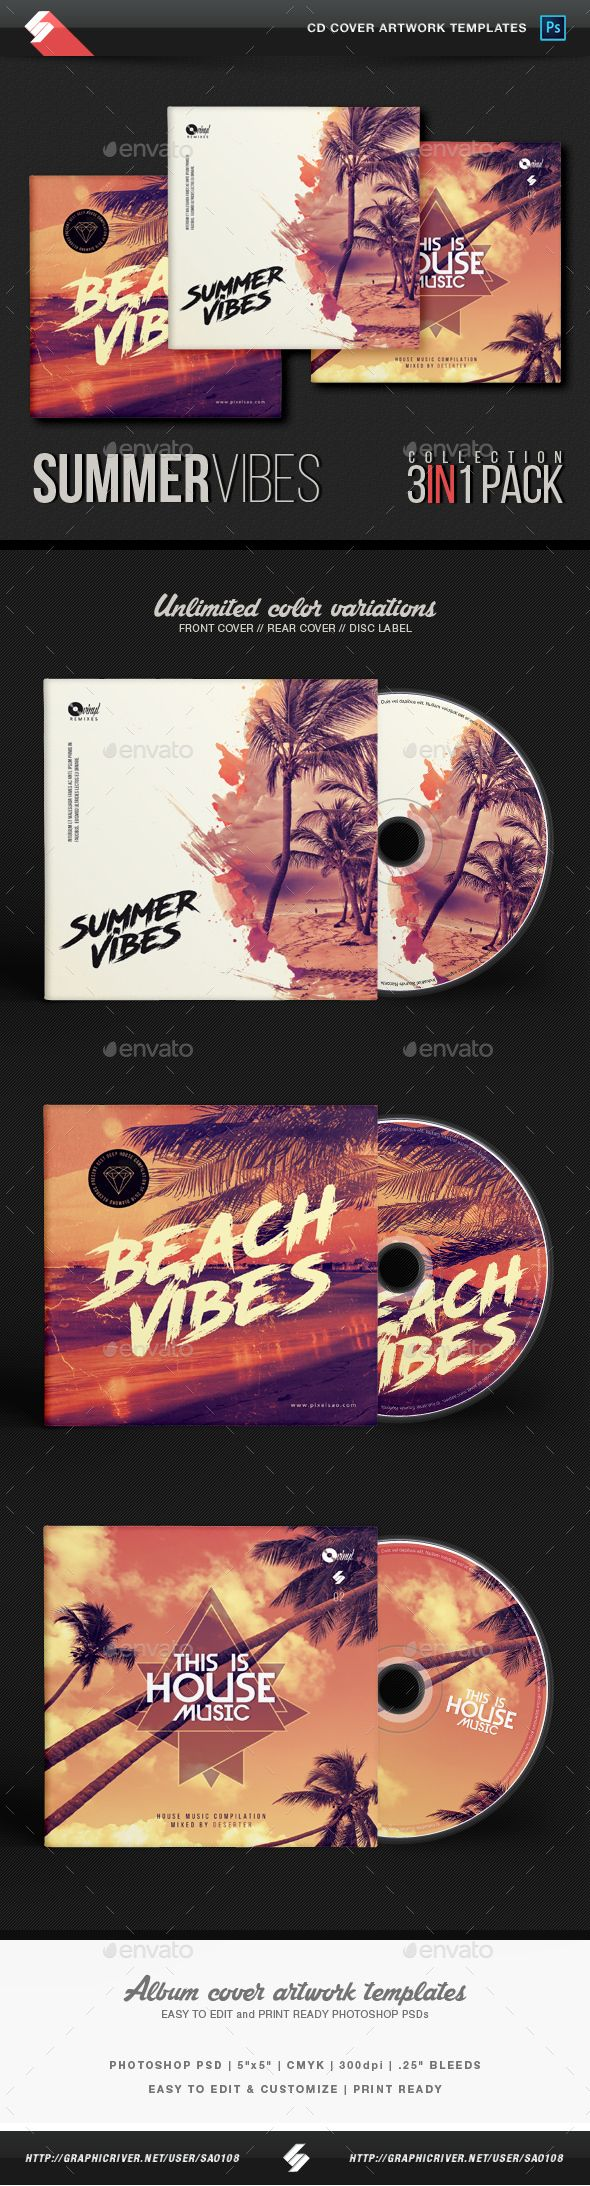 Summer Vibes  House Music CD Cover Templates Bundle  — PSD Template #beach #album • Download ➝ https://graphicriver.net/item/summer-vibes-house-music-cd-cover-templates-bundle/18194143?ref=pxcr